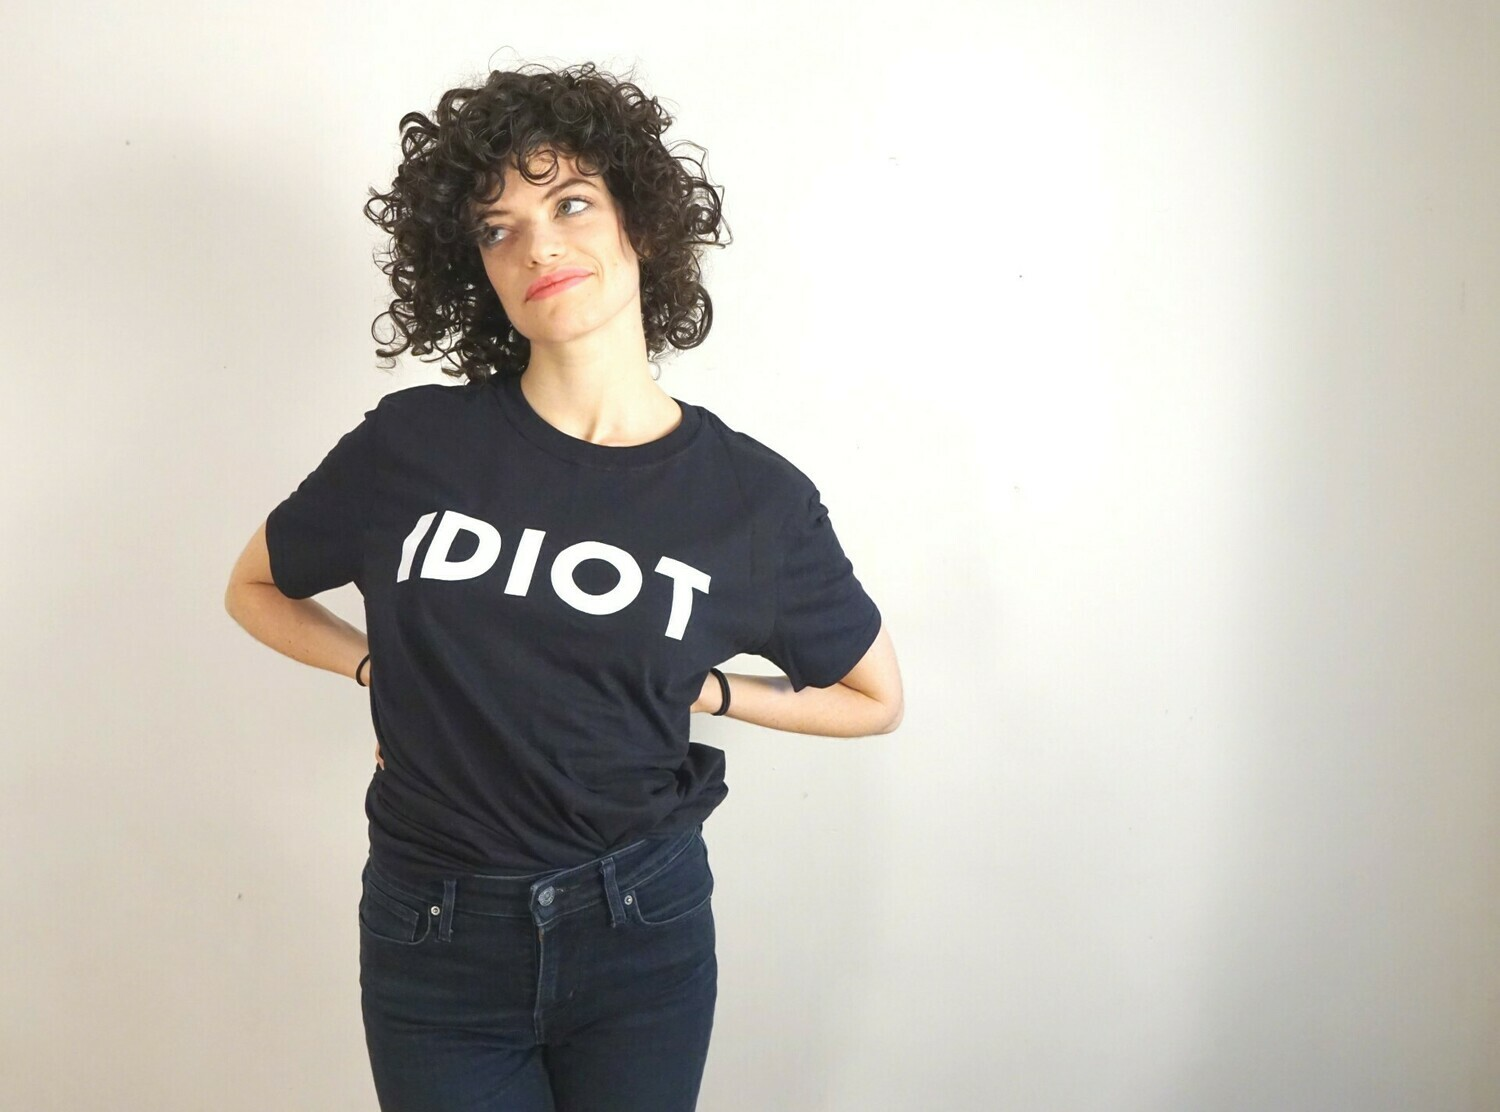 IDIOT - TShirt XL